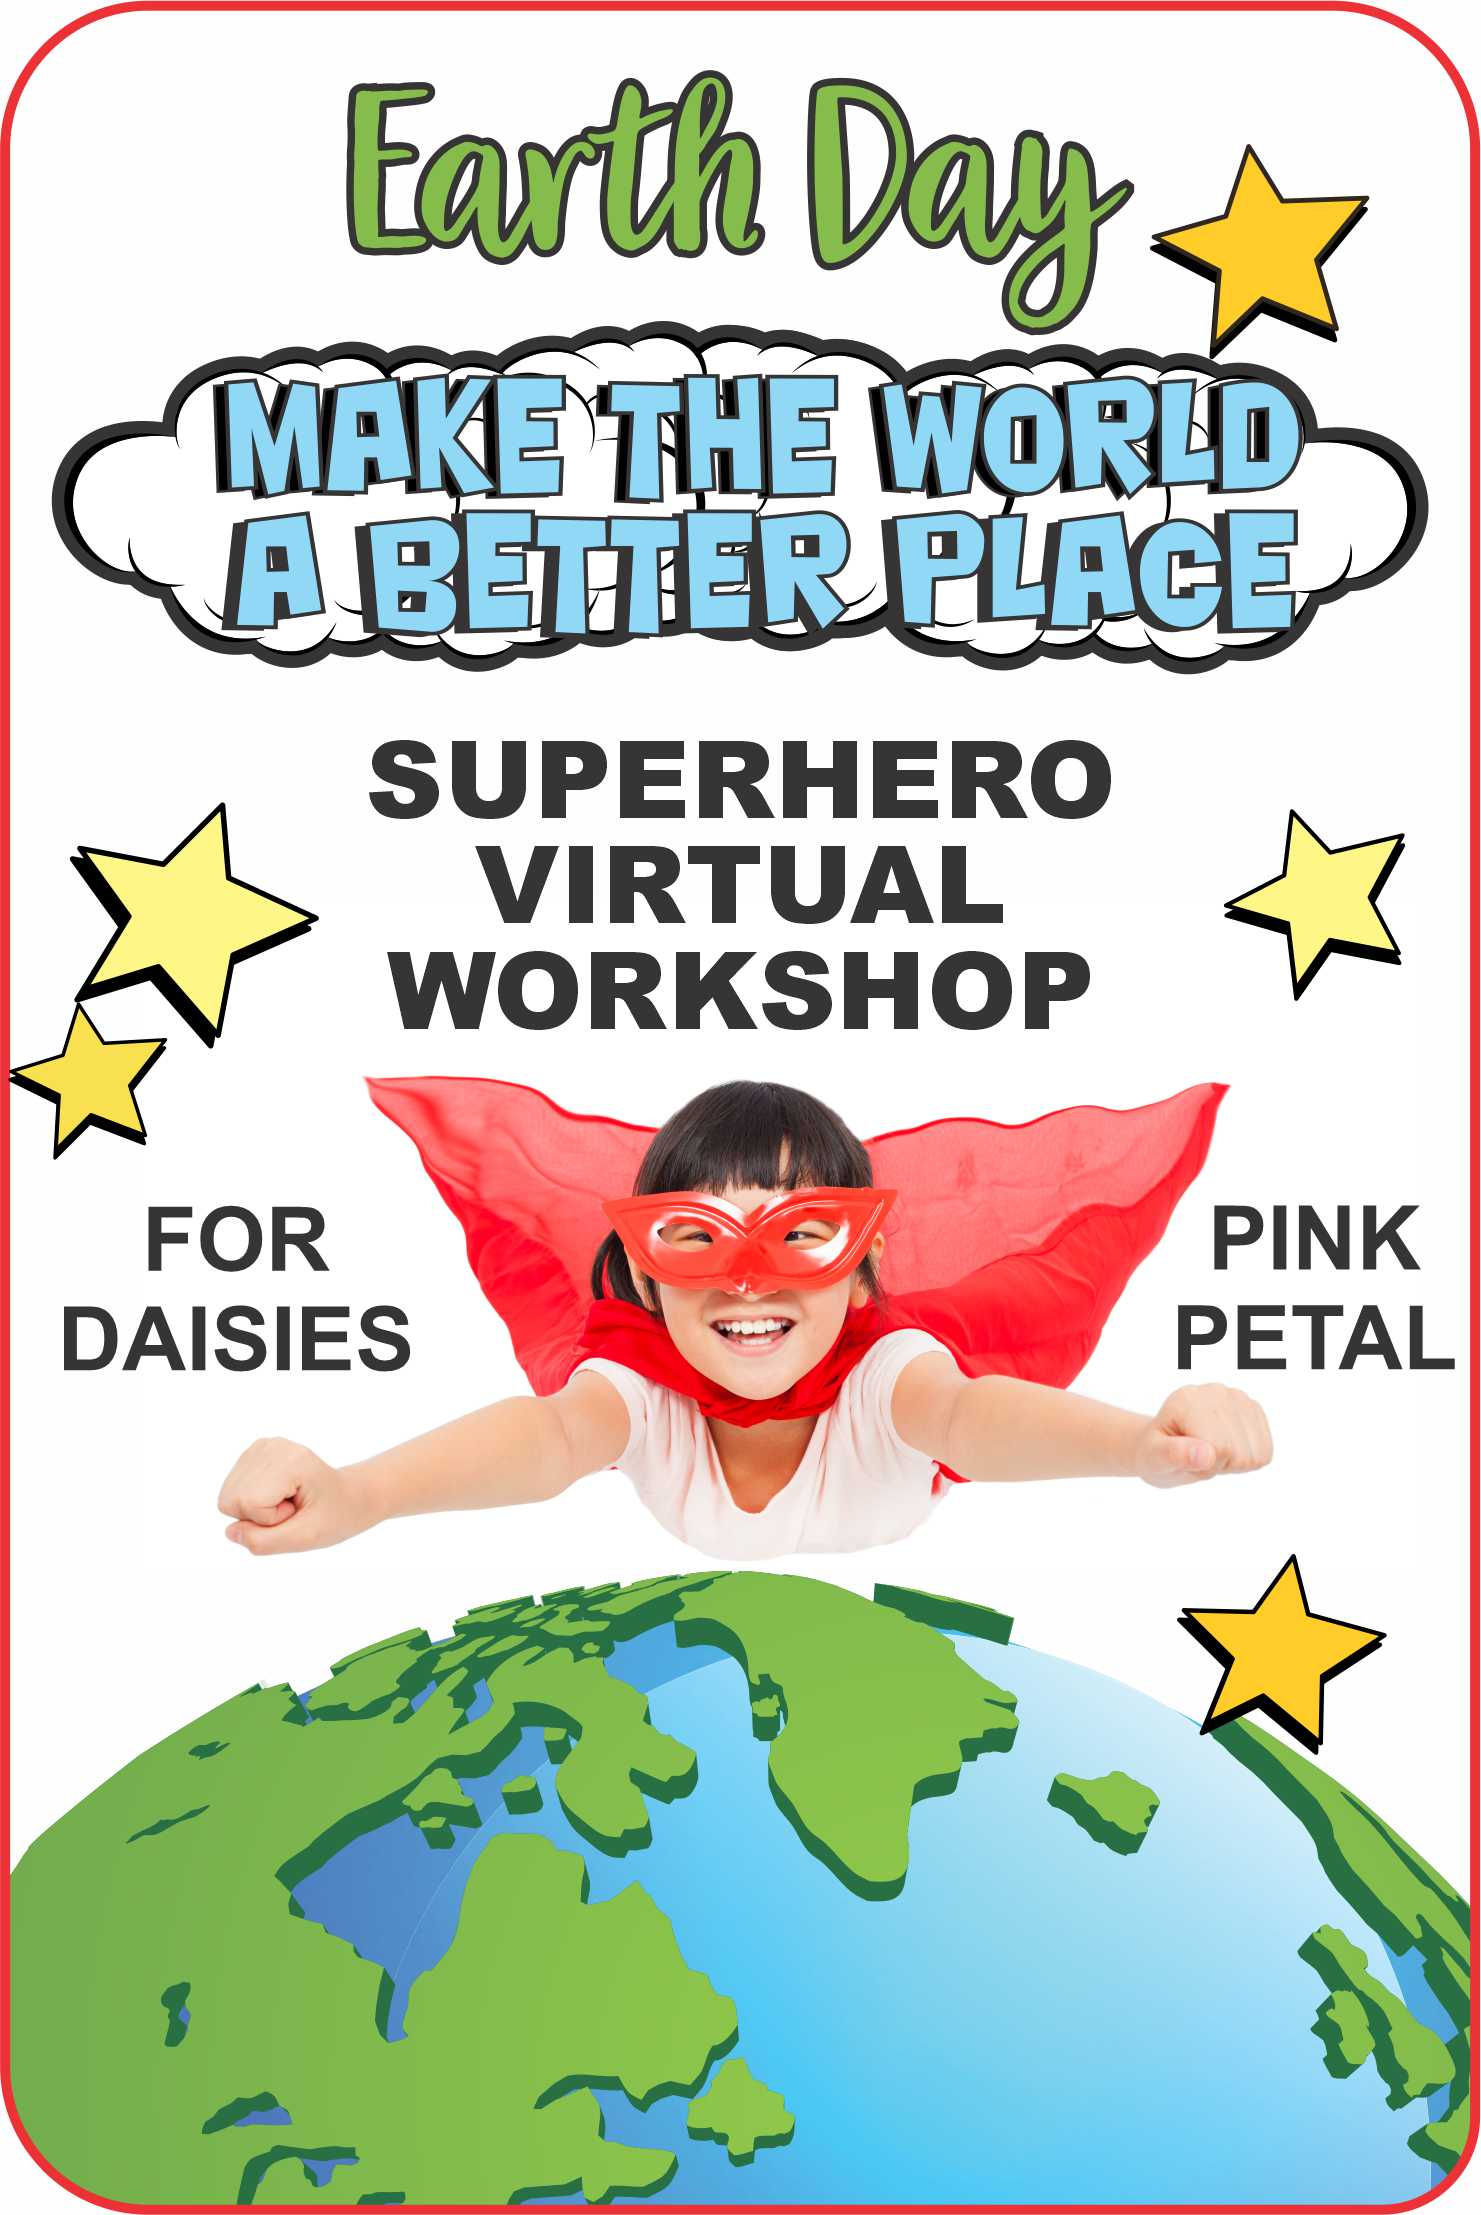 Superheroes know how to save the world and still have fun! Our Superheroes Jackie and Seraphina will show you how! You'll even learn a cheer! #makingfriends #superheroes #earthday #daisies #girlscouts #virtualworkshop #makethrworldbetter #gsdaisy #daisypetals #cheer via @gsleader411